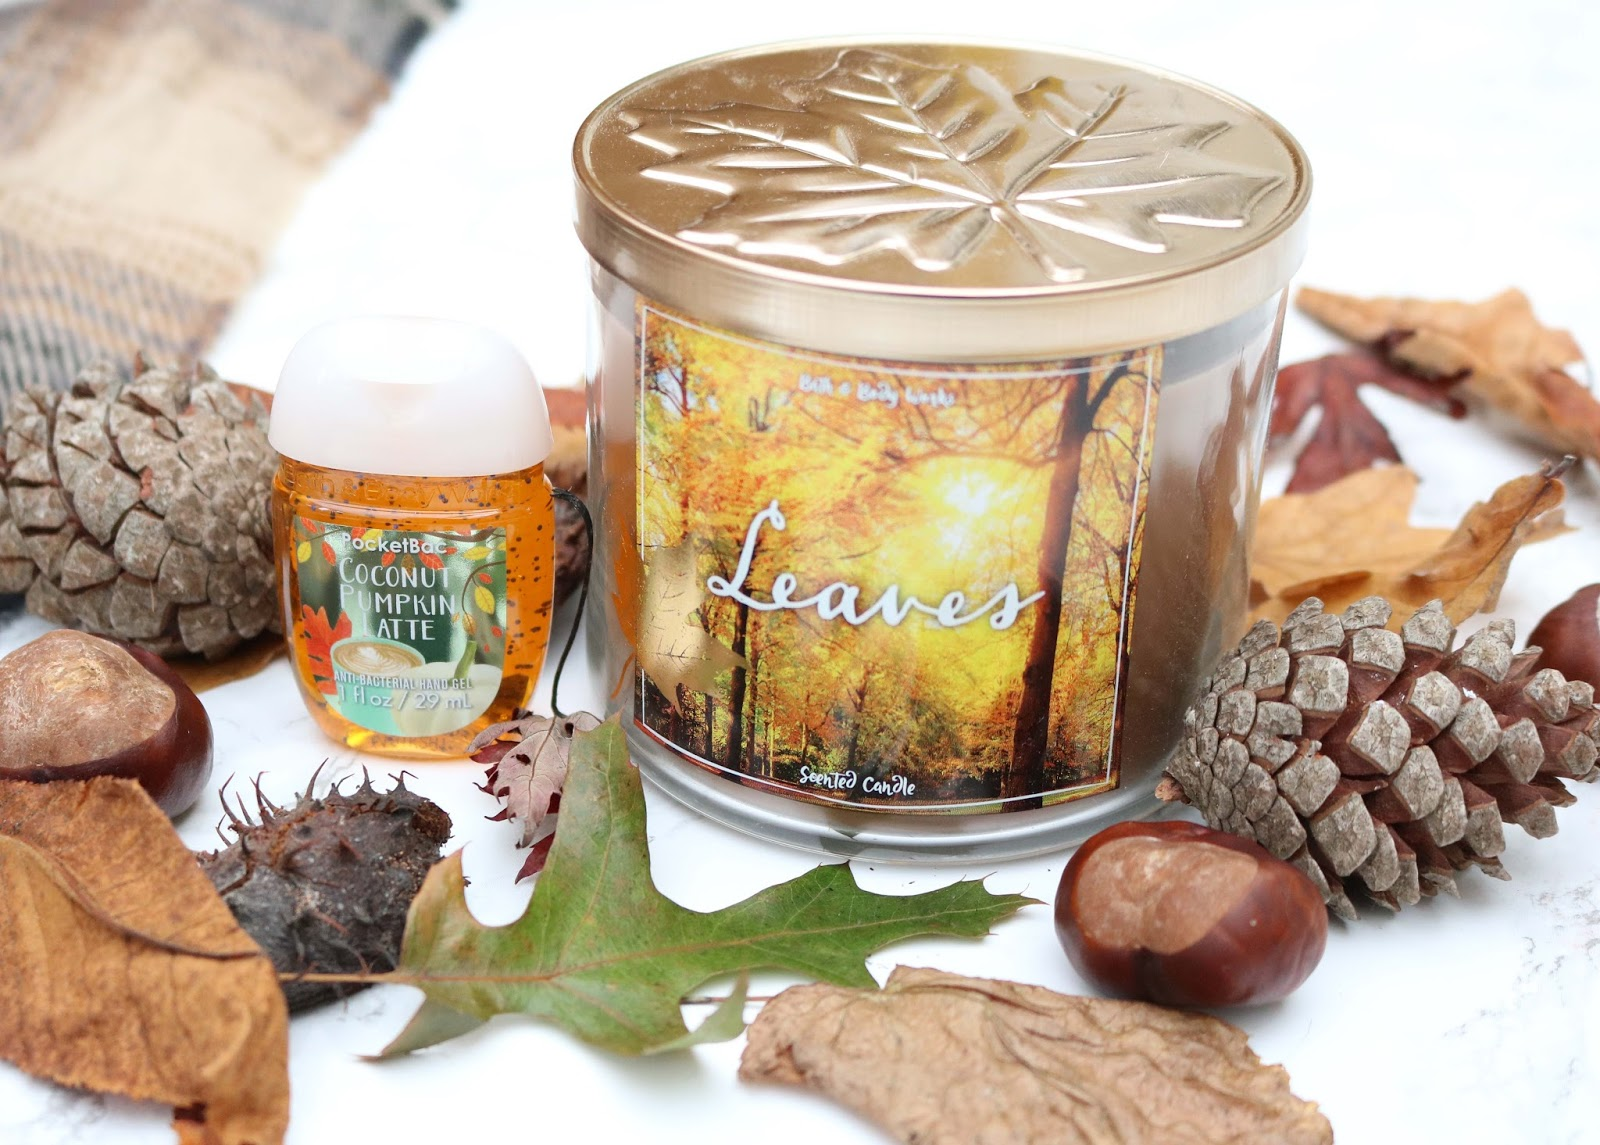 2 years, giveaway, blogiversary, celebrate, bathandbodyworks, candle, lifestyle, autumn, october,